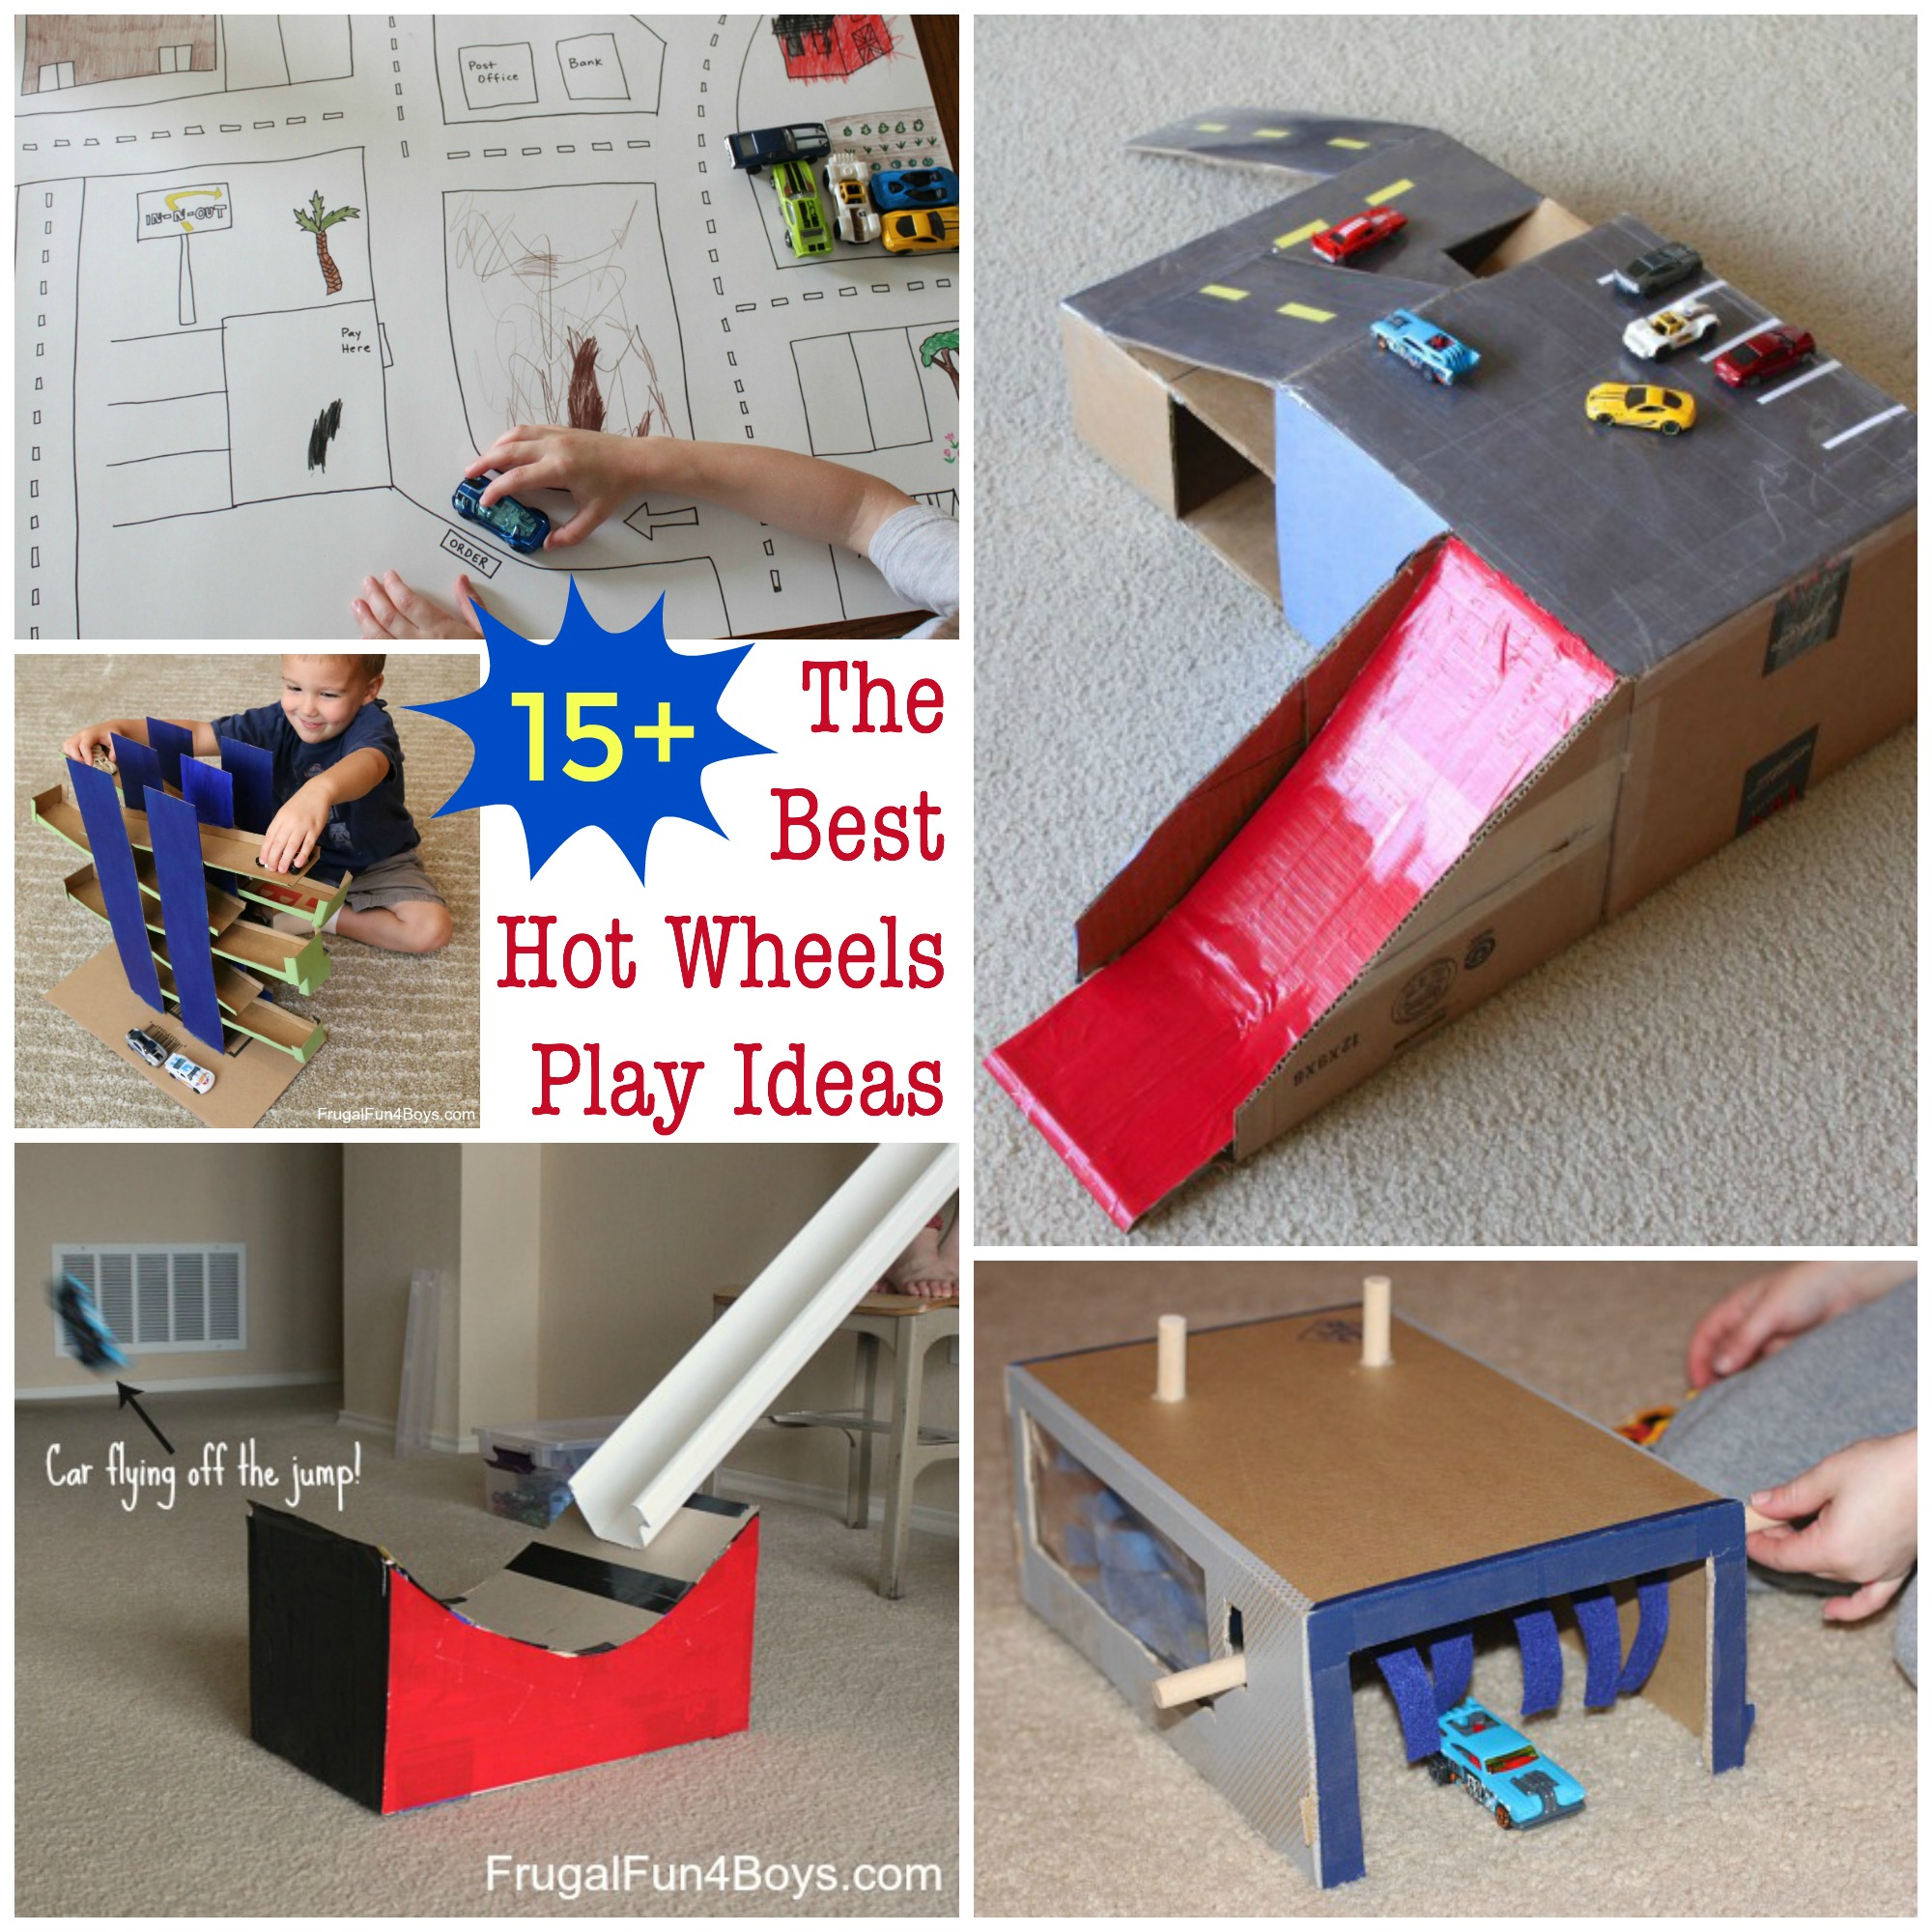 10 Ideas About Cardboard Box Cars On Pinterest: The BEST Toy Car Play Ideas